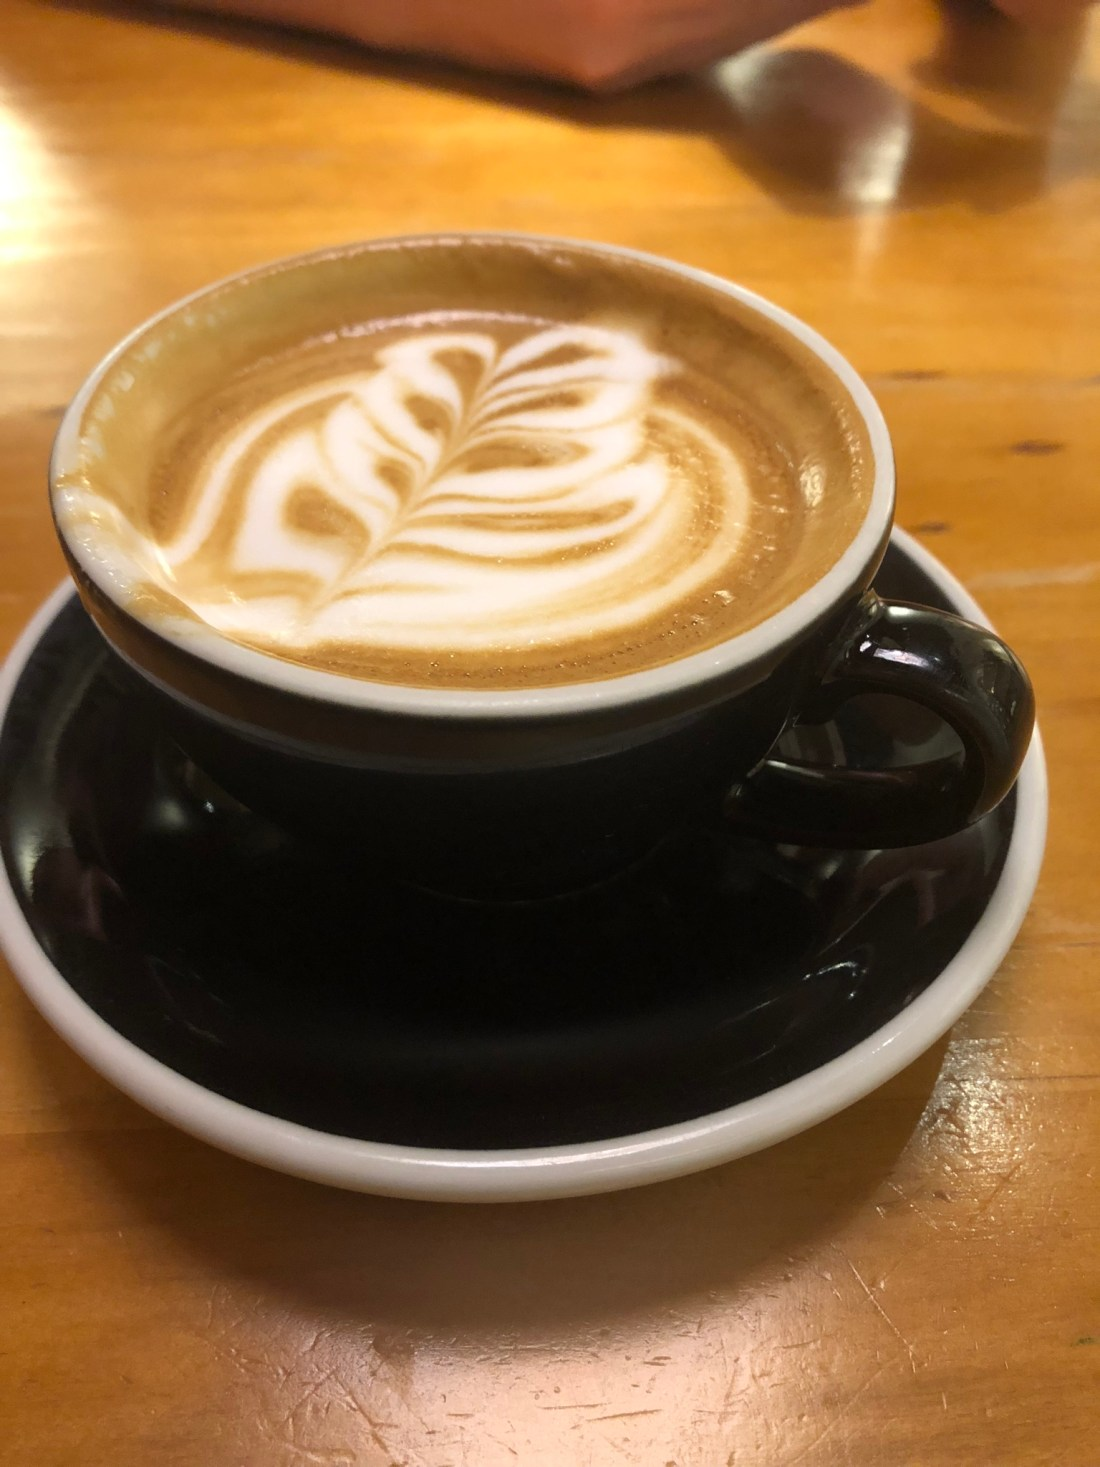 Latte from Black Sugar Coffee, Kowloon